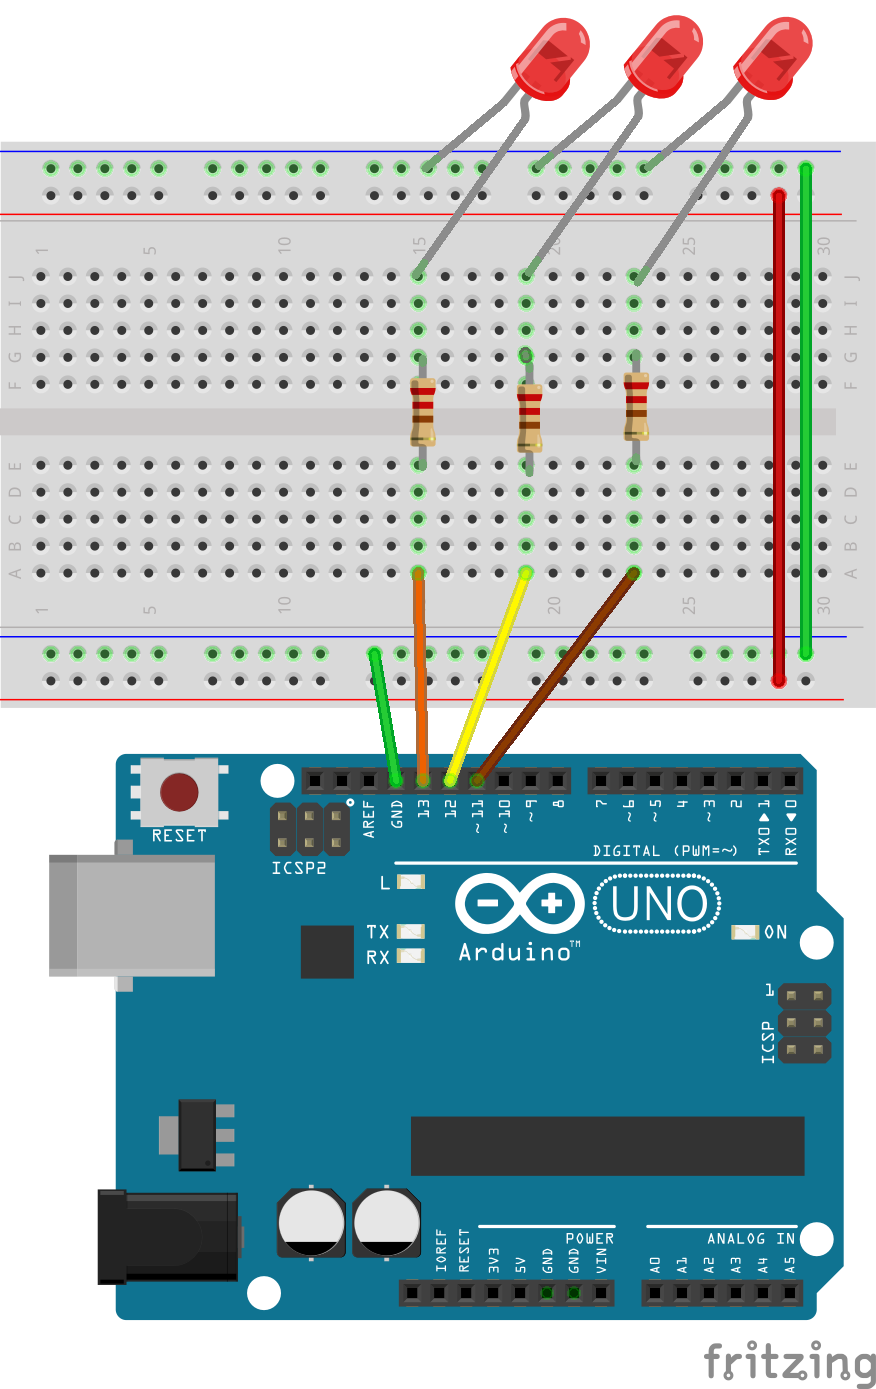 Oosmos Blink Example Wiringpi Led Figure 1 Arduino Wiring Diagram